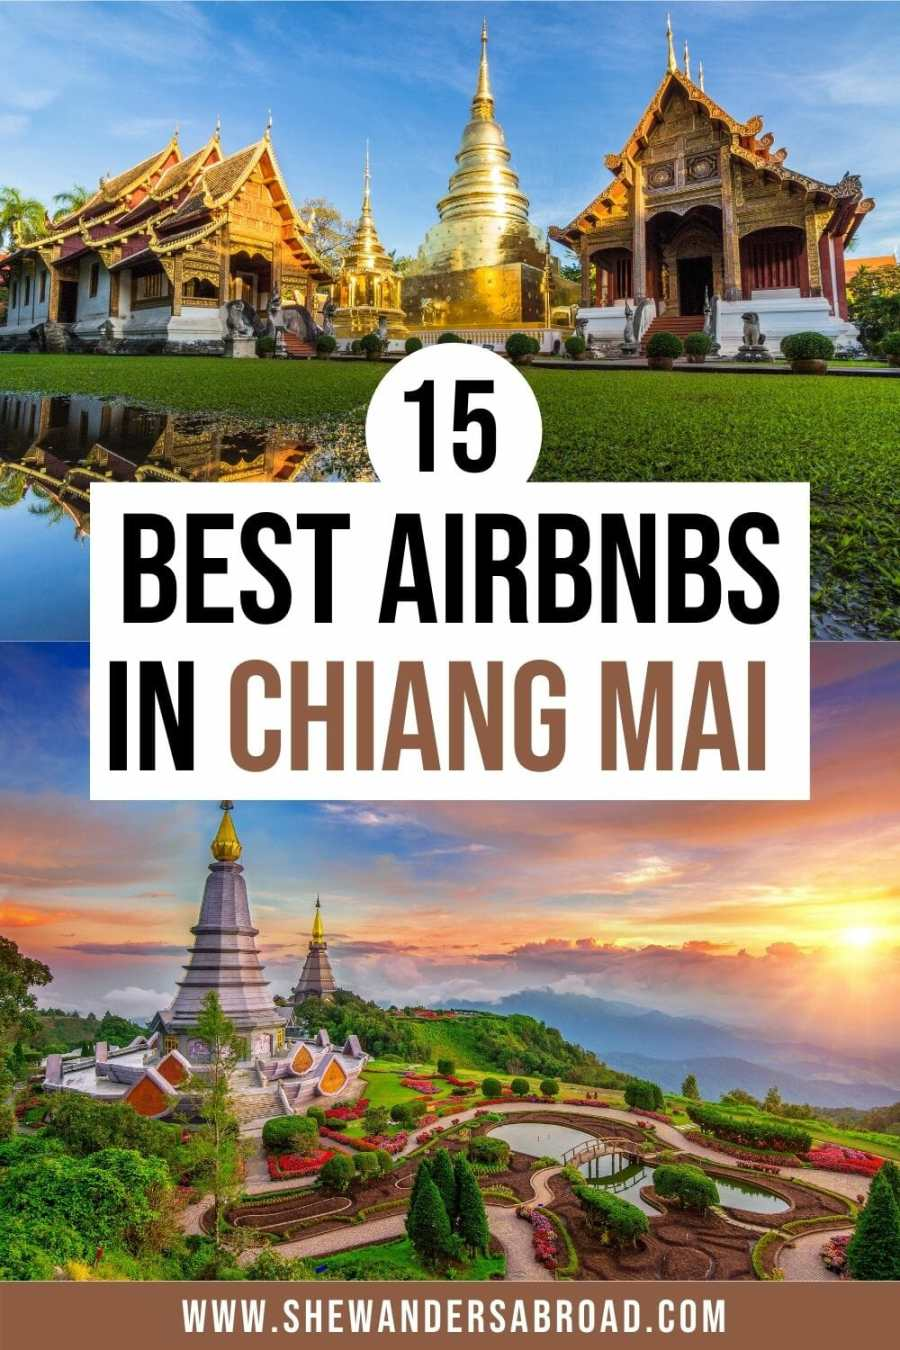 Best Airbnbs in Chiang Mai Thailand